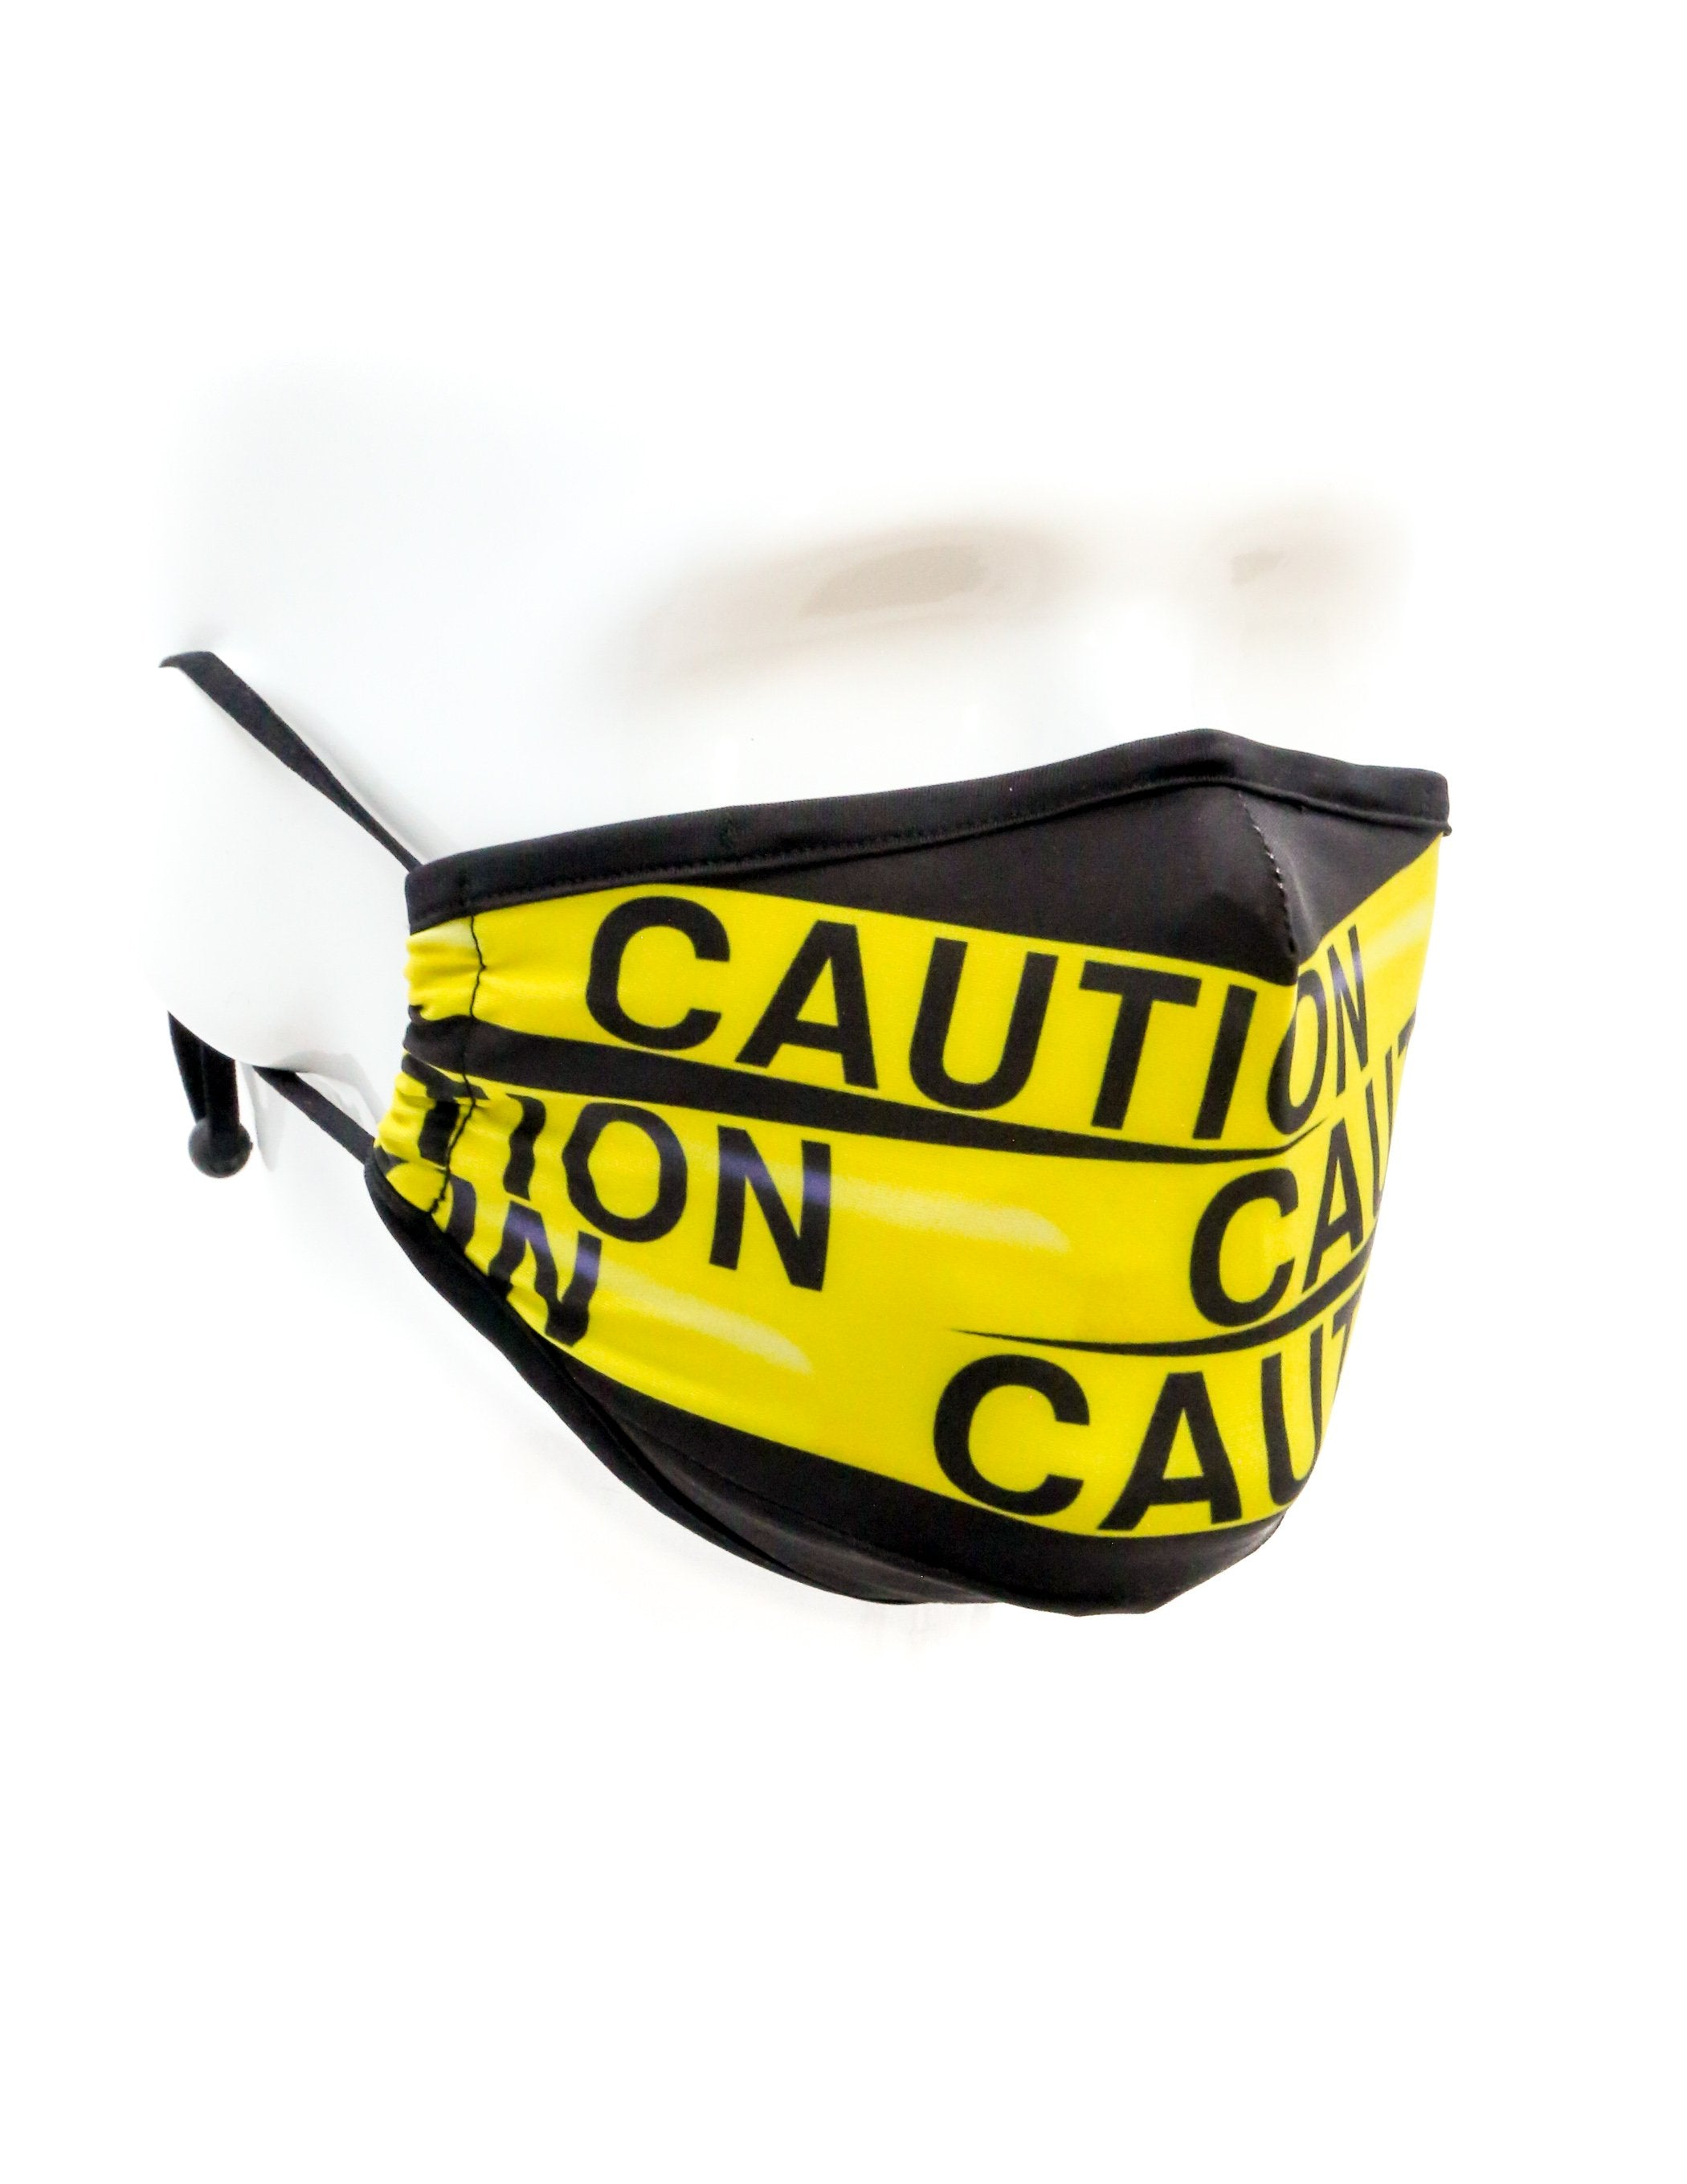 18043: FYDELITY- Premium Protective Fabric Face Covering Mask: Caution